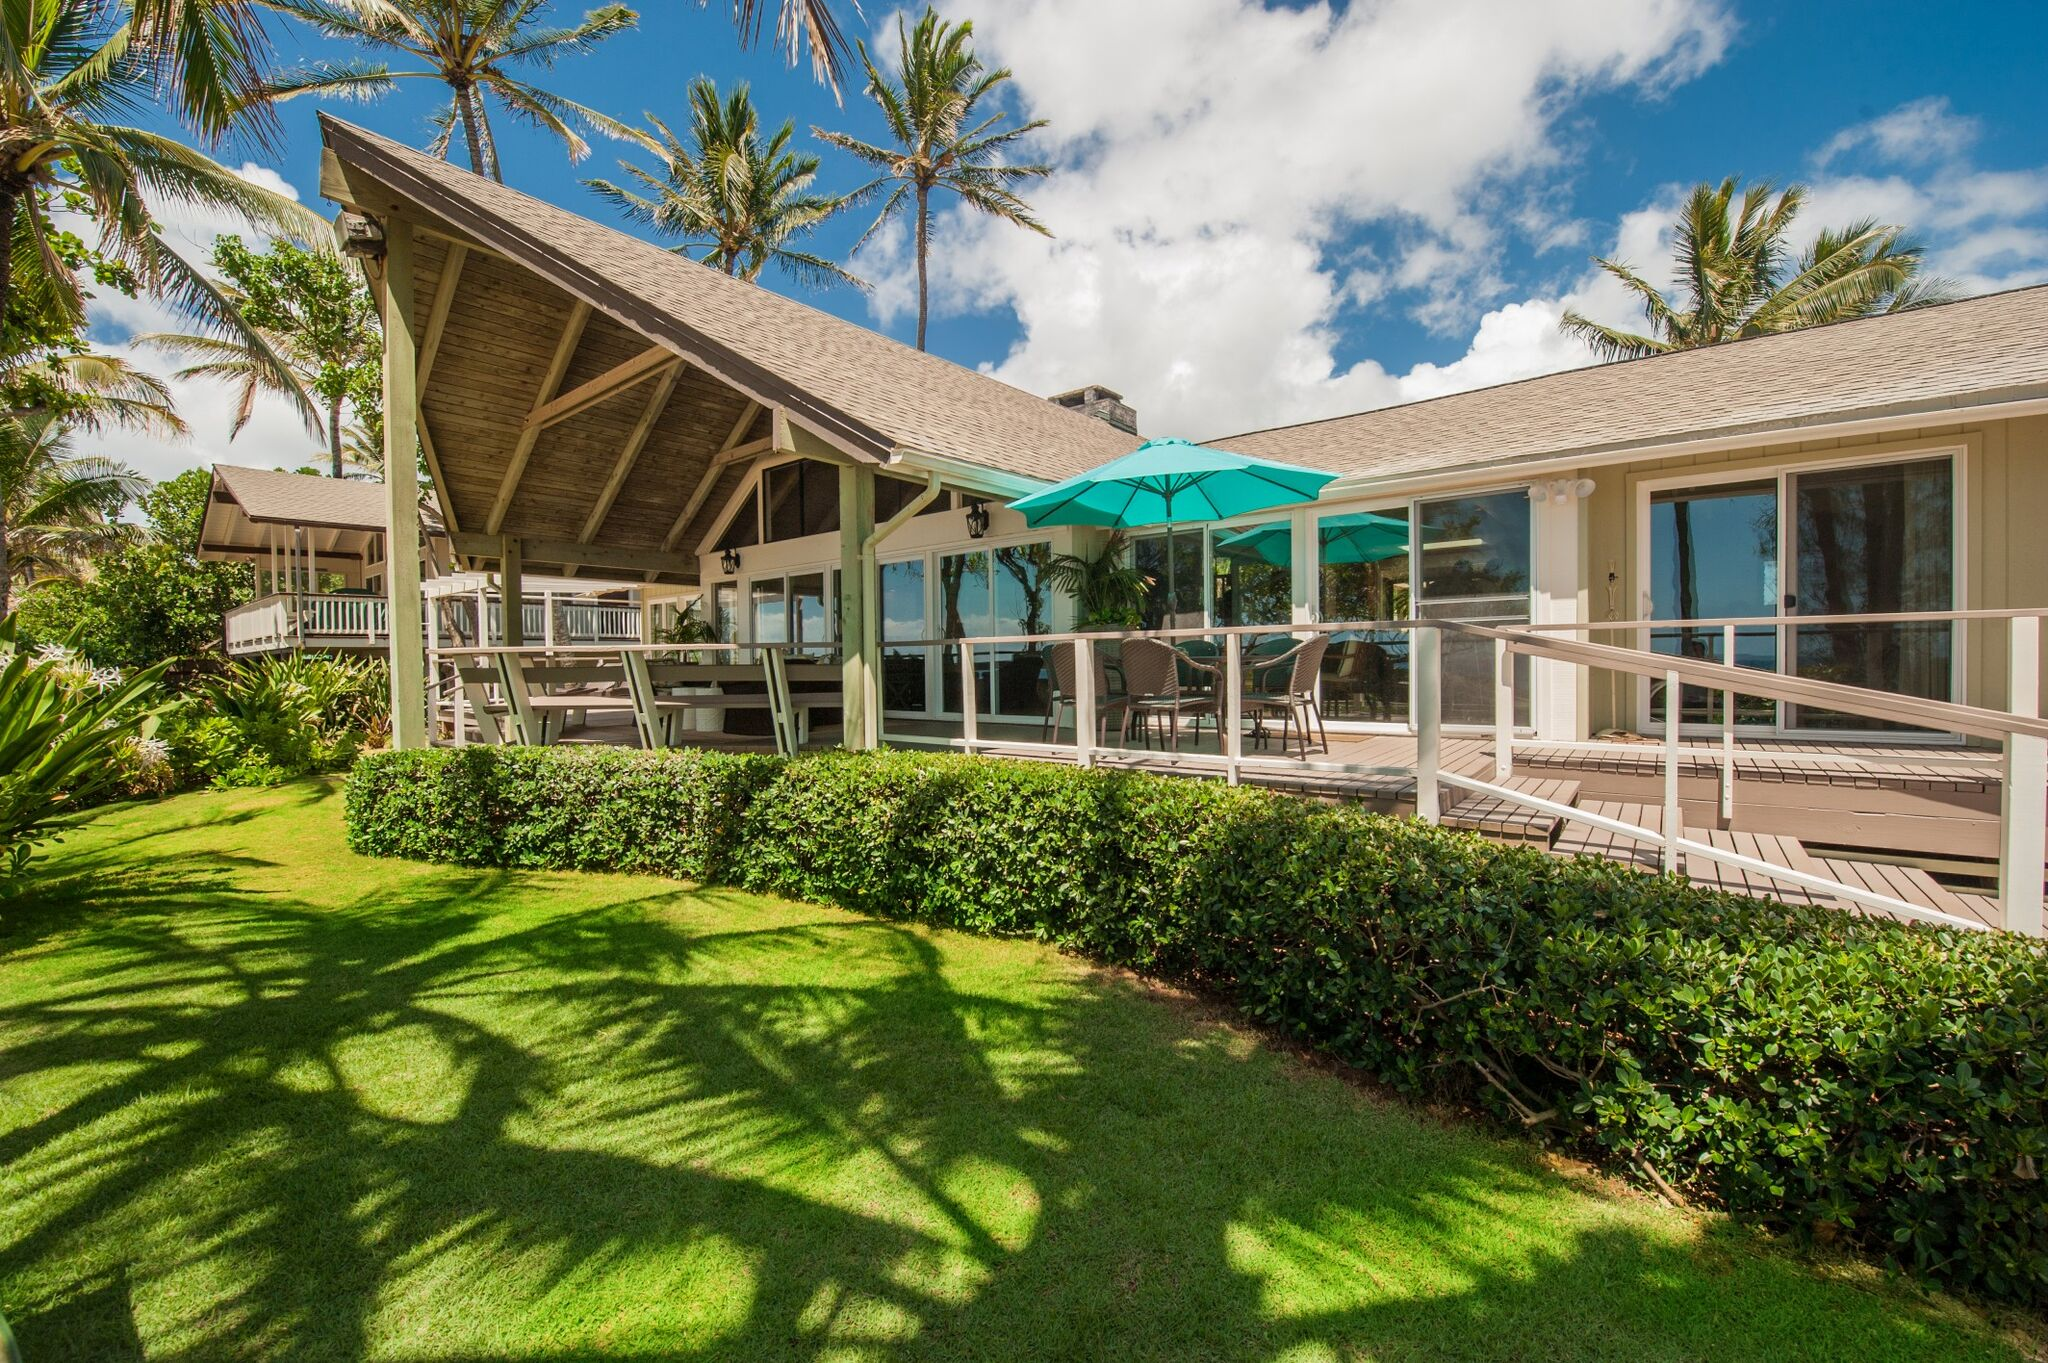 Naupaka Beachfront Dream Home - - 4 Beds- 4 Baths- 3 Garage Spaces- 2,582 Living SF- Built in 1955